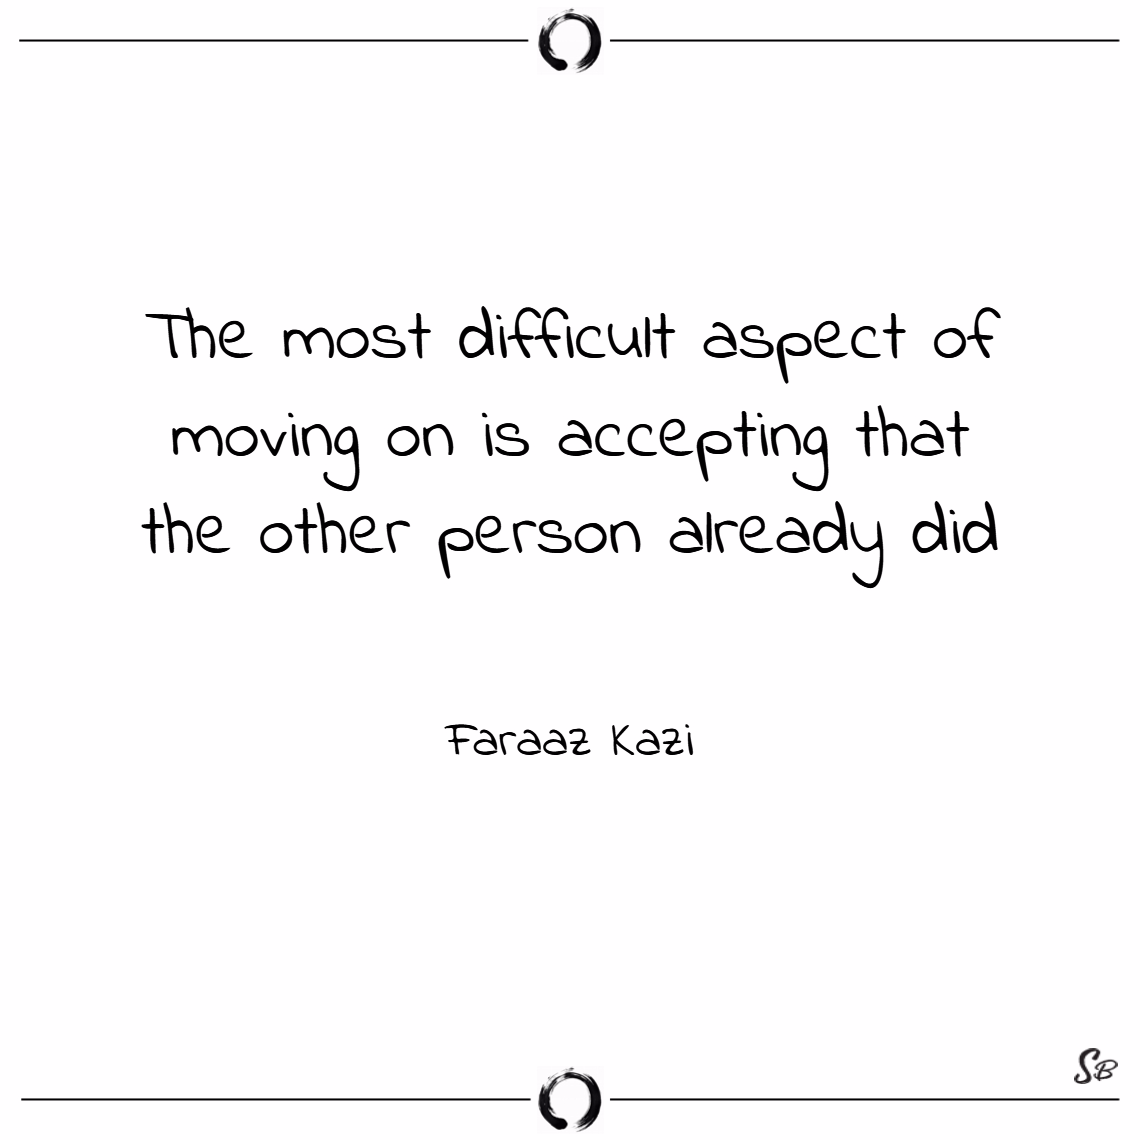 The most difficult aspect of moving on is acceptin